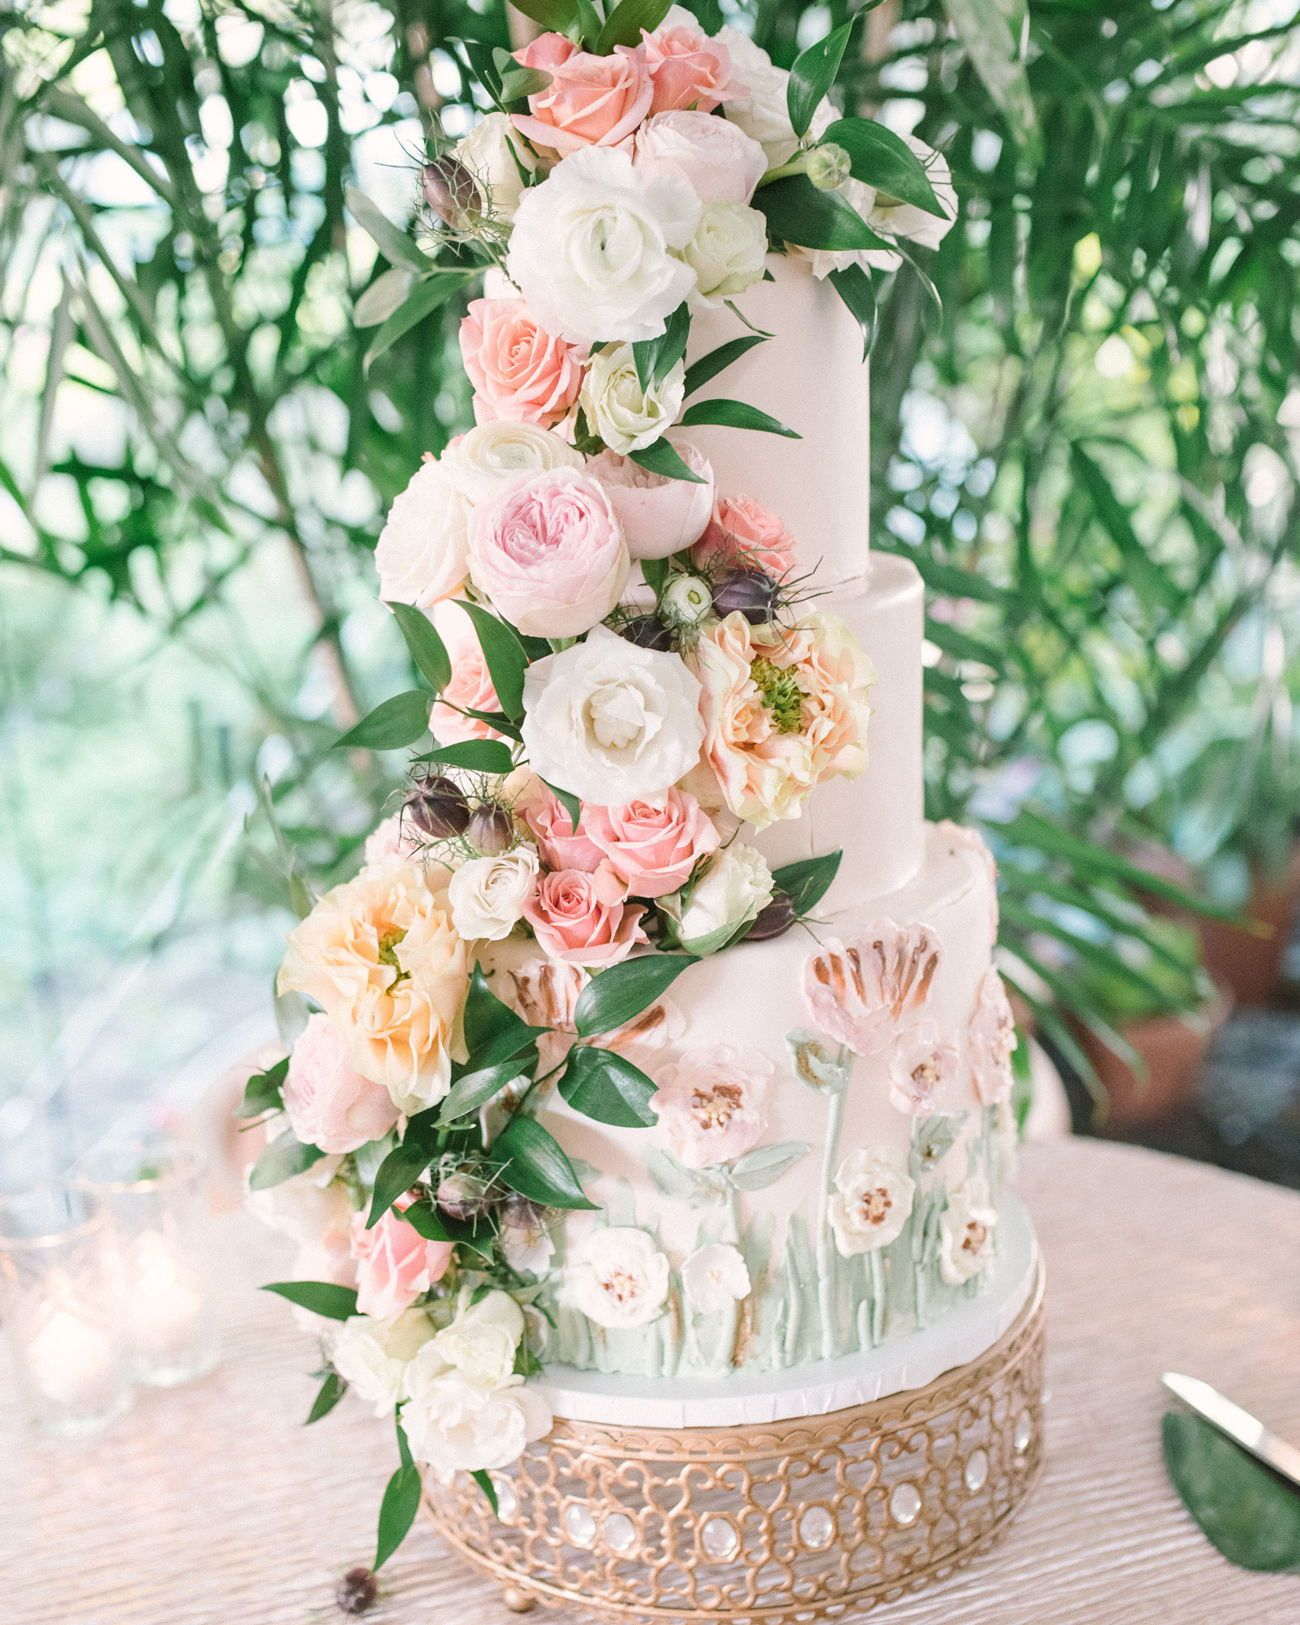 29 Ways To Turn Your Wedding Into A Secret Garden